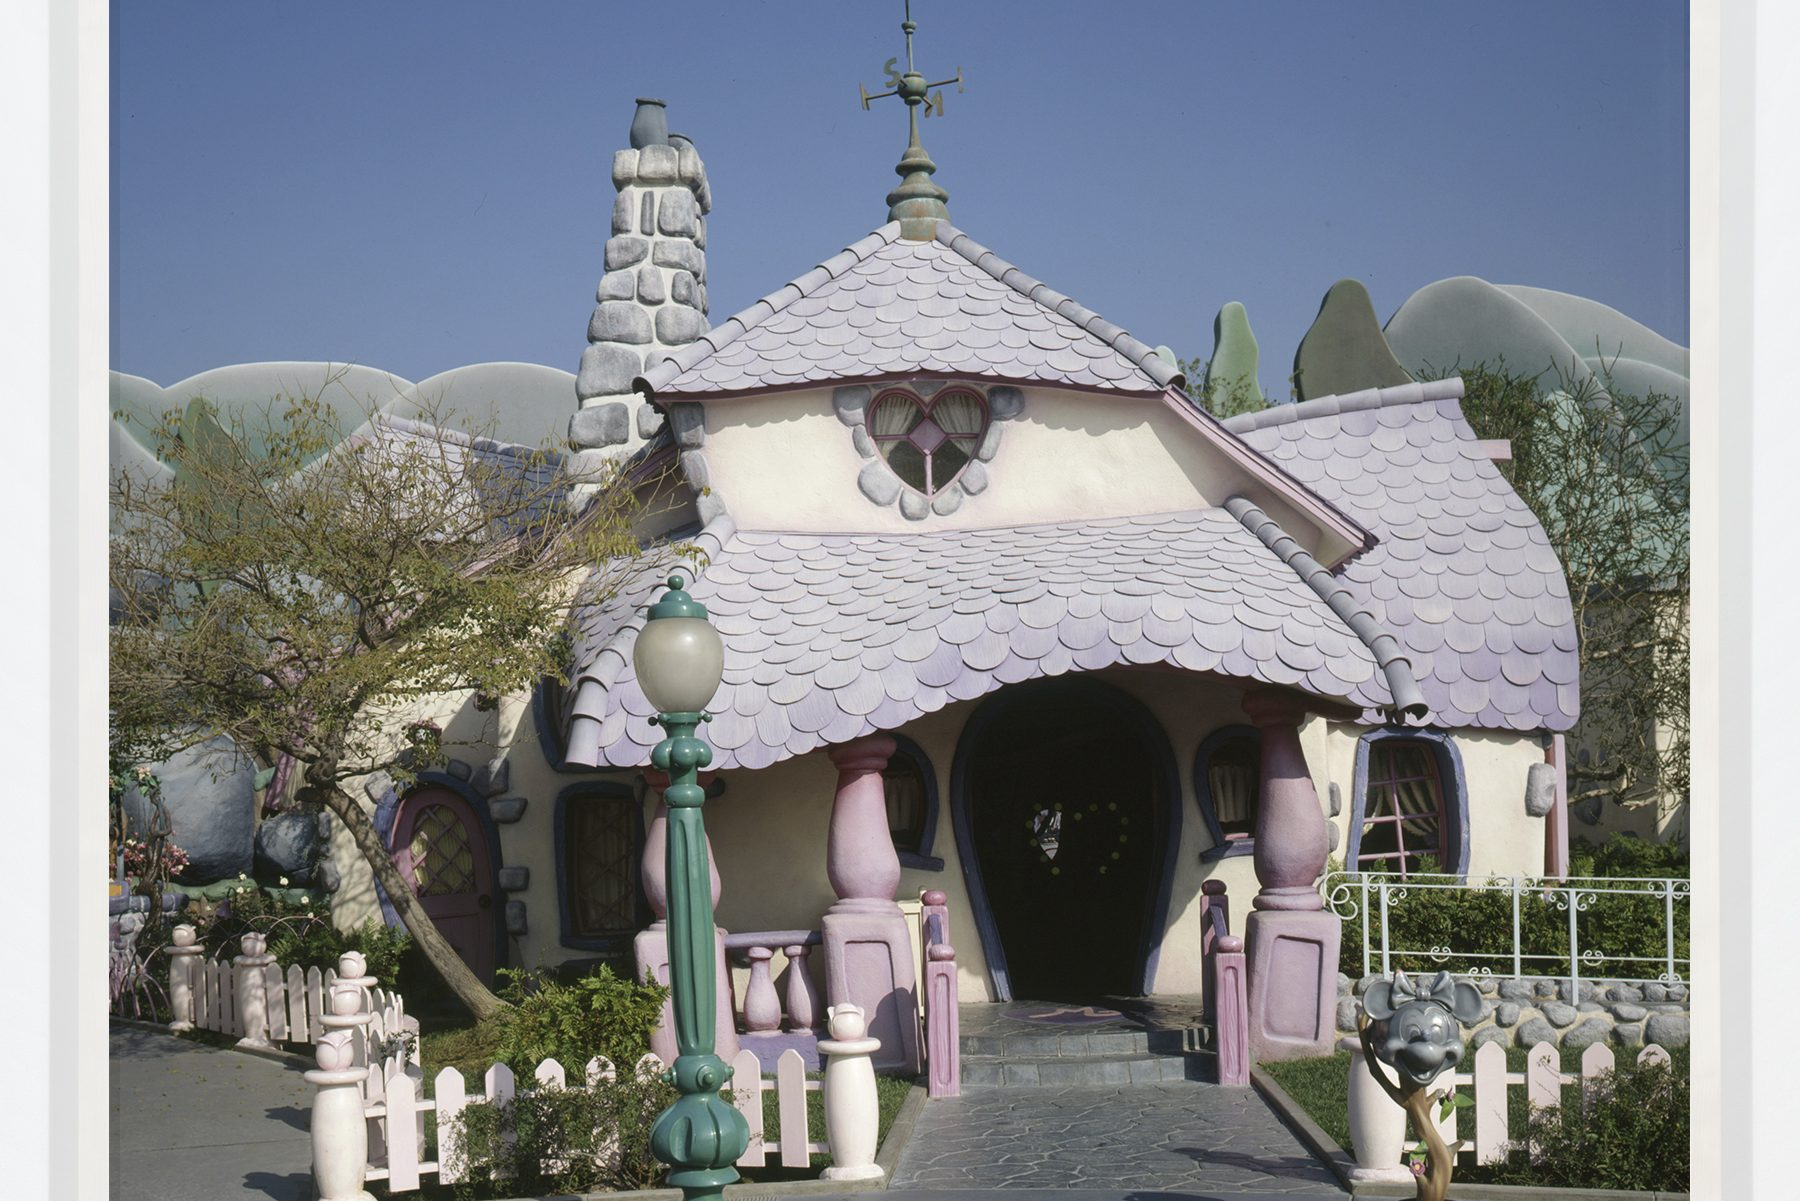 A cartoonish house, with a stone chimney and imbricated pink tiles, squats, blubbery and soft against a similarly cartoonish backdrop of rolling, grey hills.